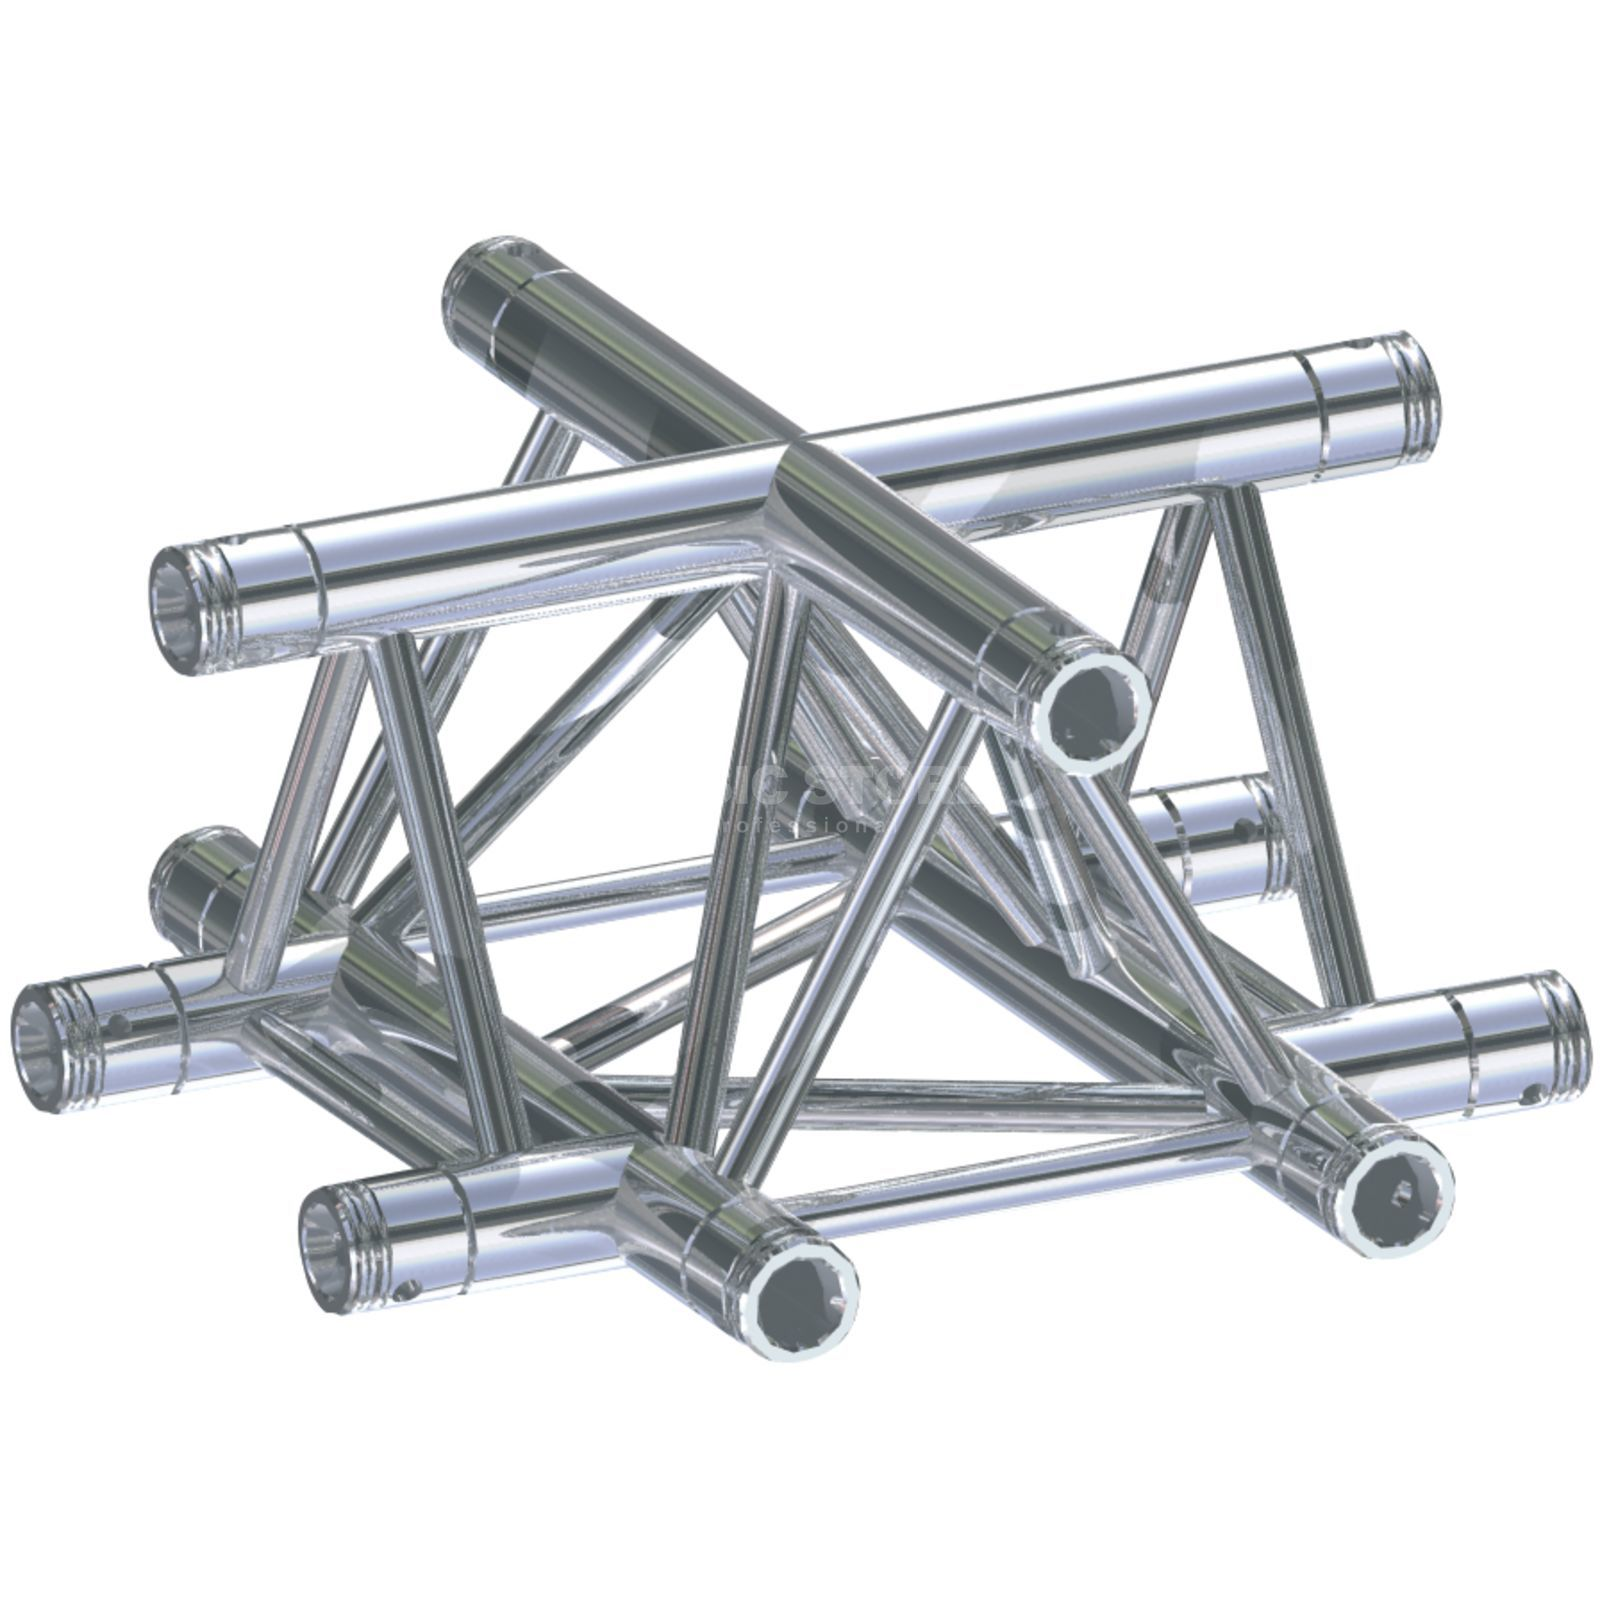 Global Truss F33, X-Section C41 3-Point 4-Way Cross Produktbillede